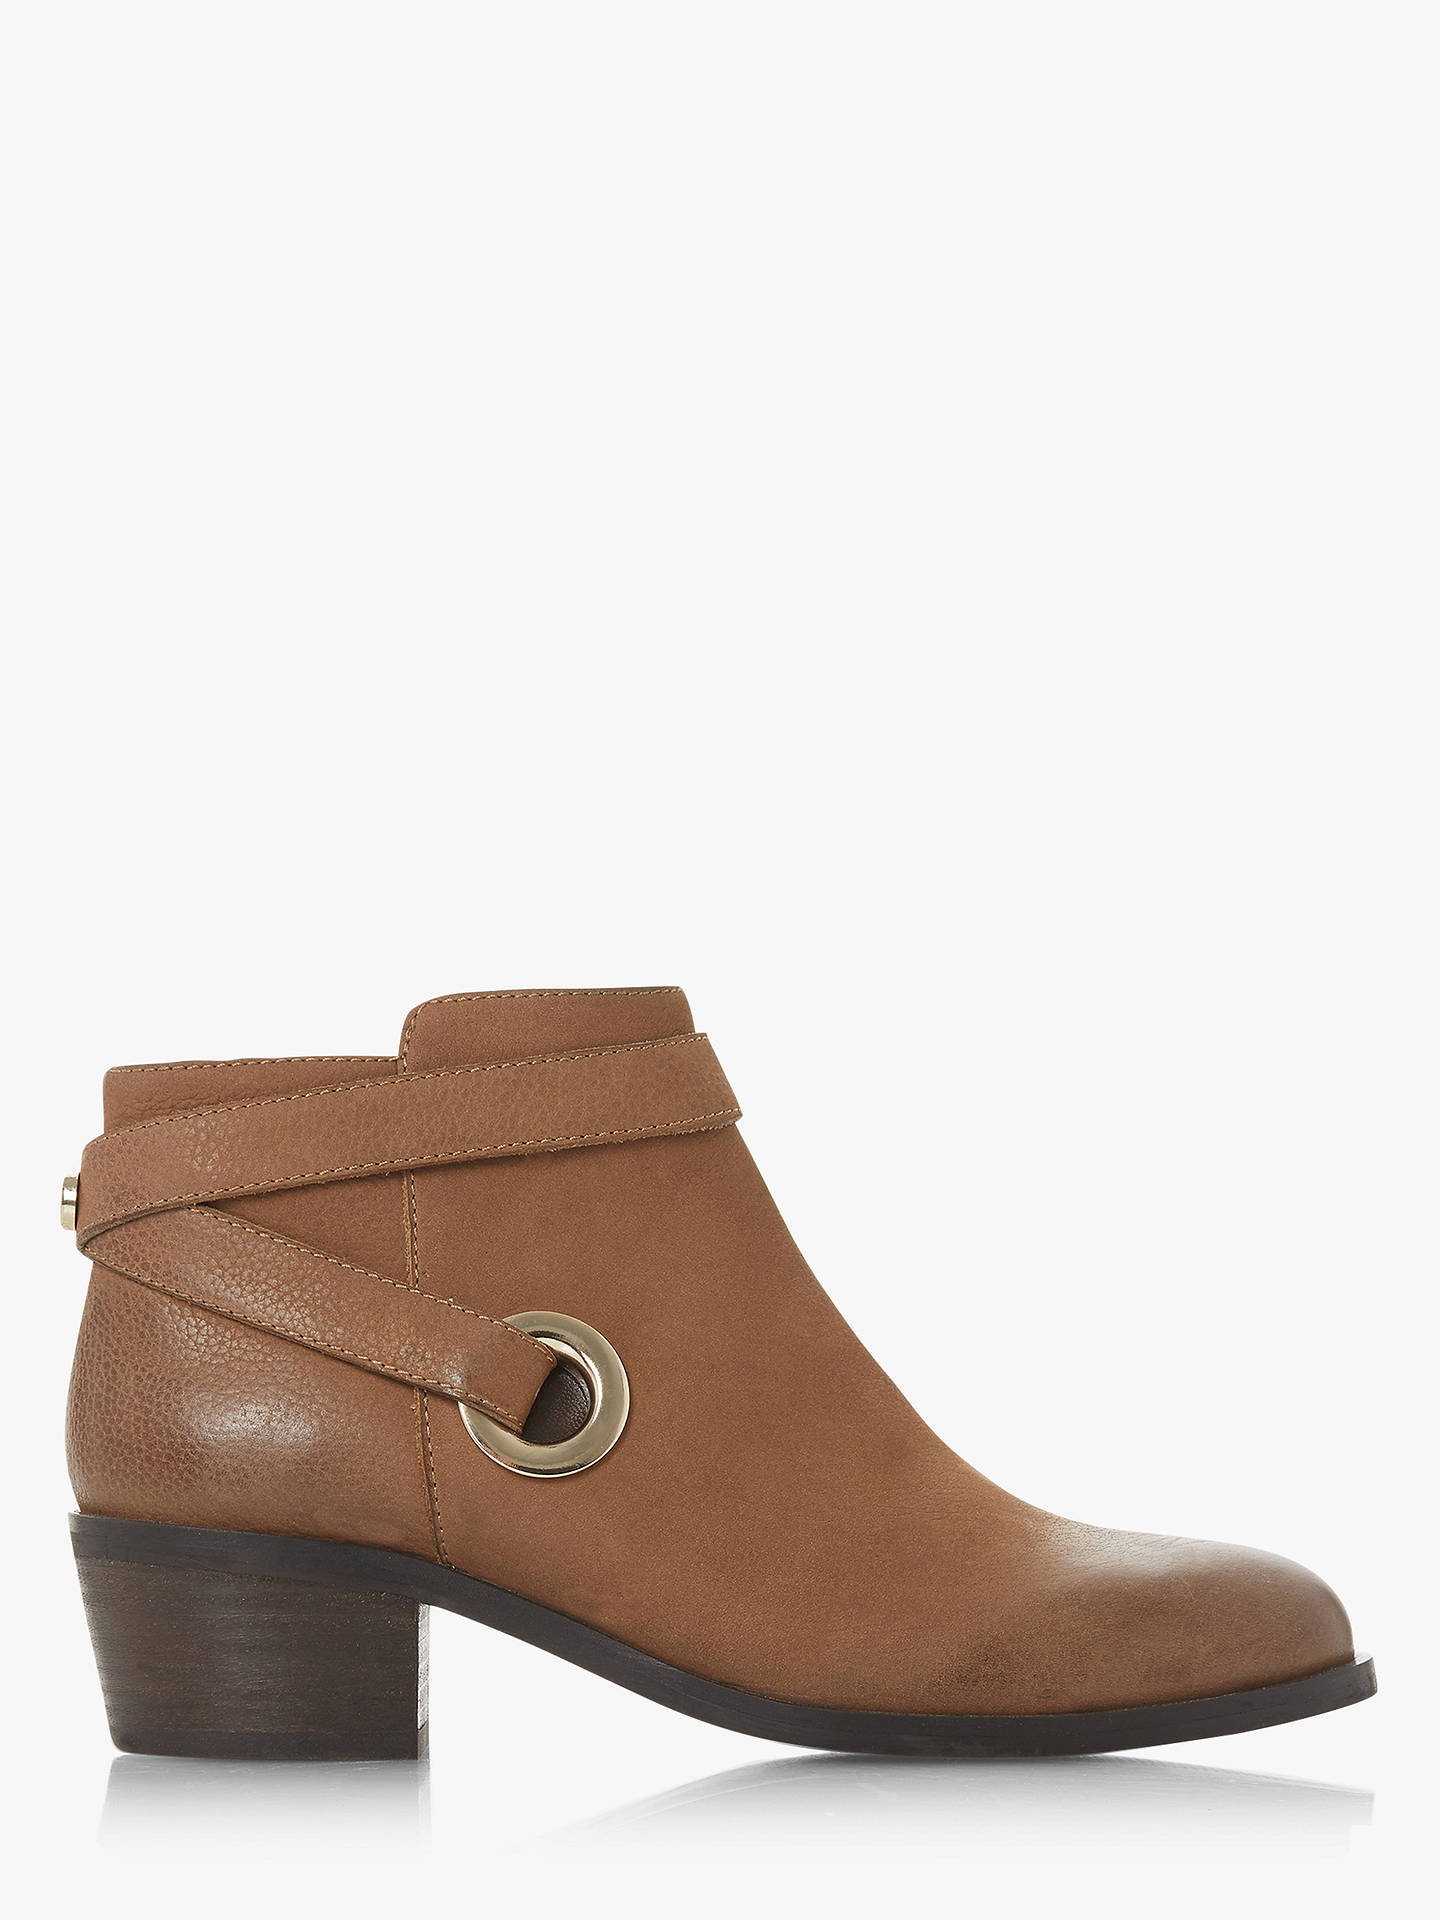 Buy Steve Madden Owald Leather Ankle Boots, Dark Tan, 3 Online at johnlewis.com